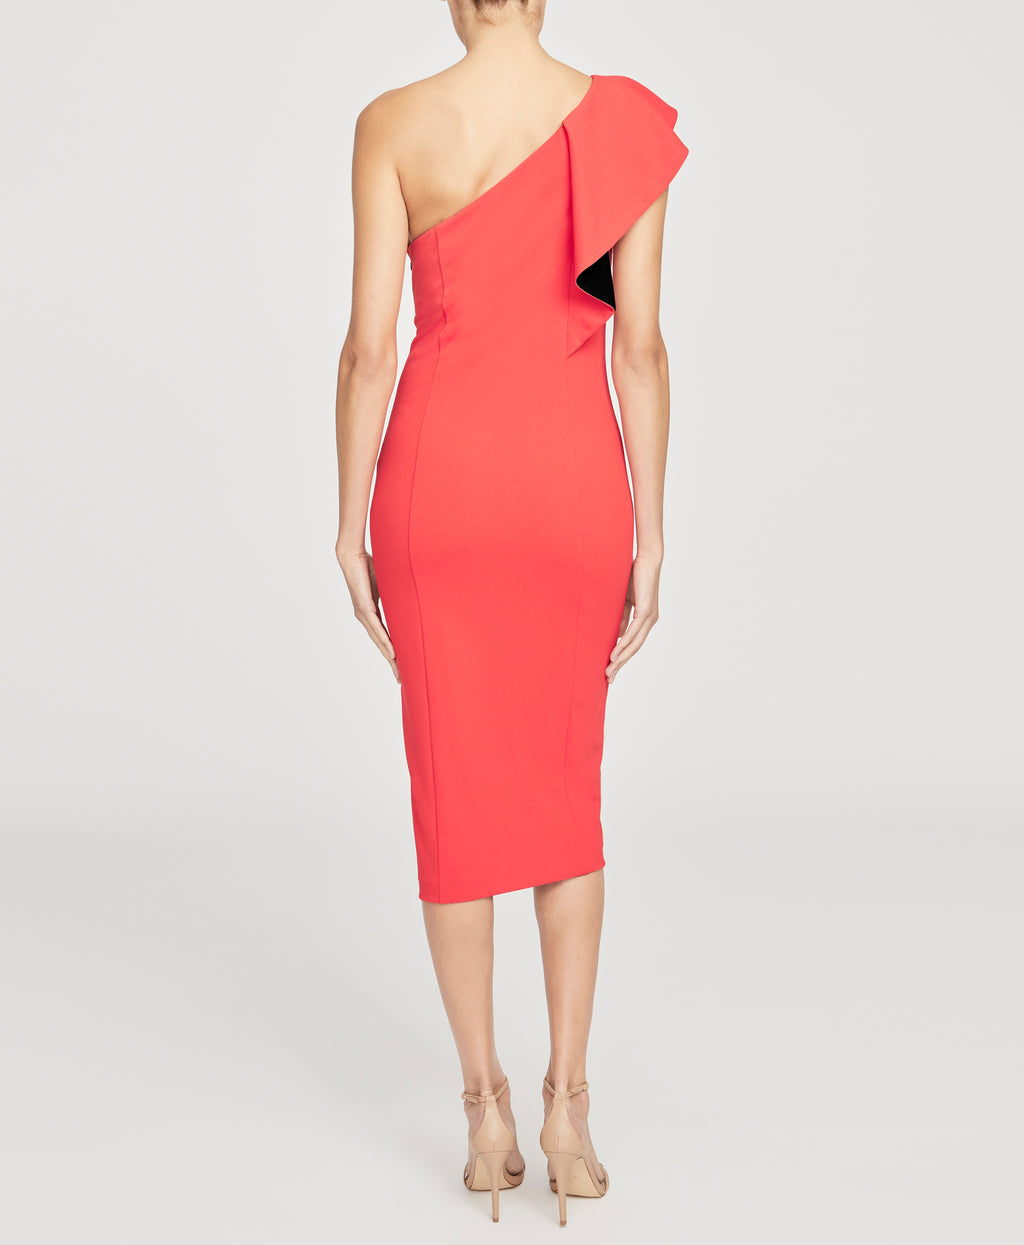 One Shoulder Ruffle Sheath Dress | RADIANT RED